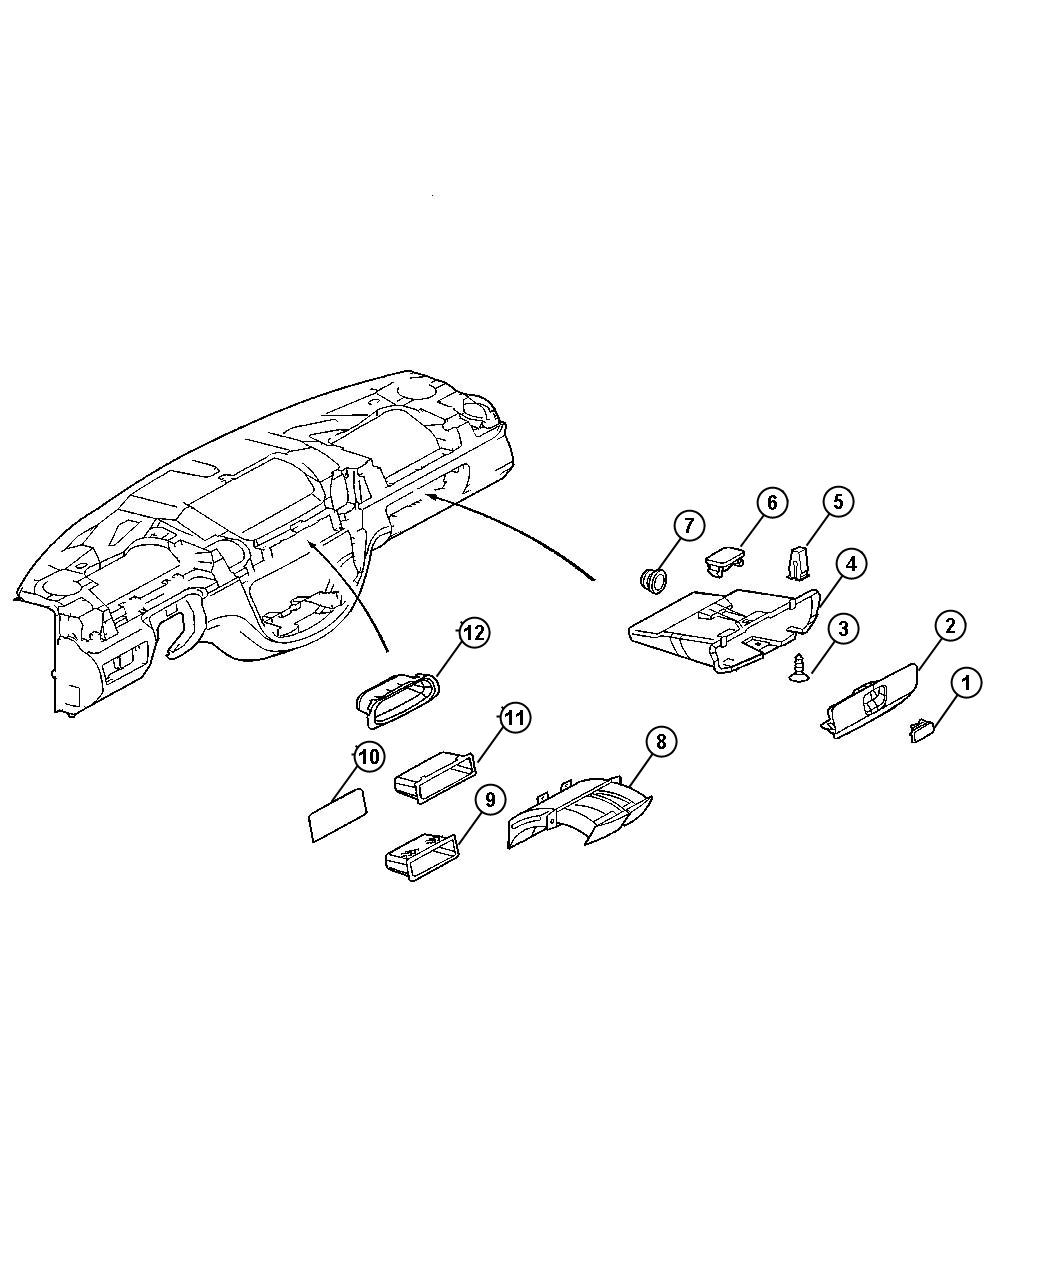 Dodge Durango Screw Used For Screw And Washer Tapping